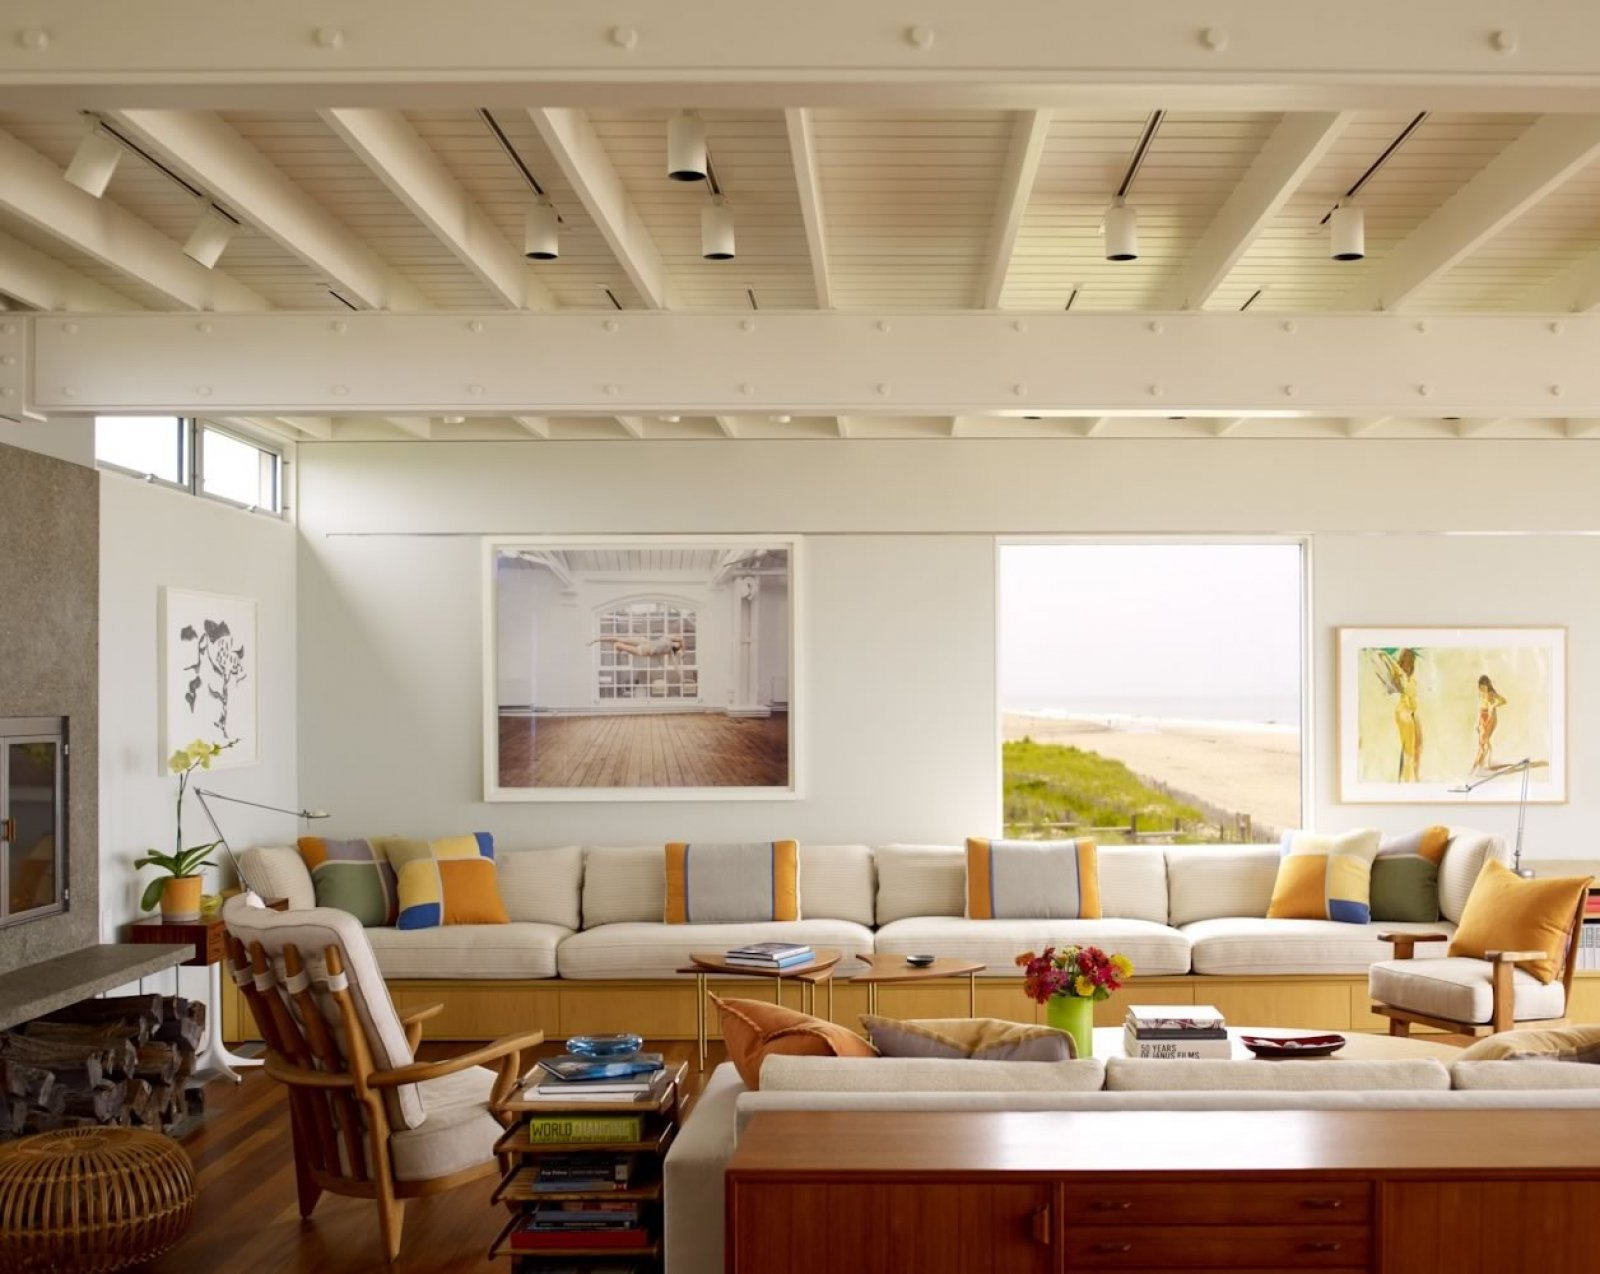 Photo 9 of 9 in Spotlight on Stelle Lomont Rouhani Architects and Their Work in the Hamptons